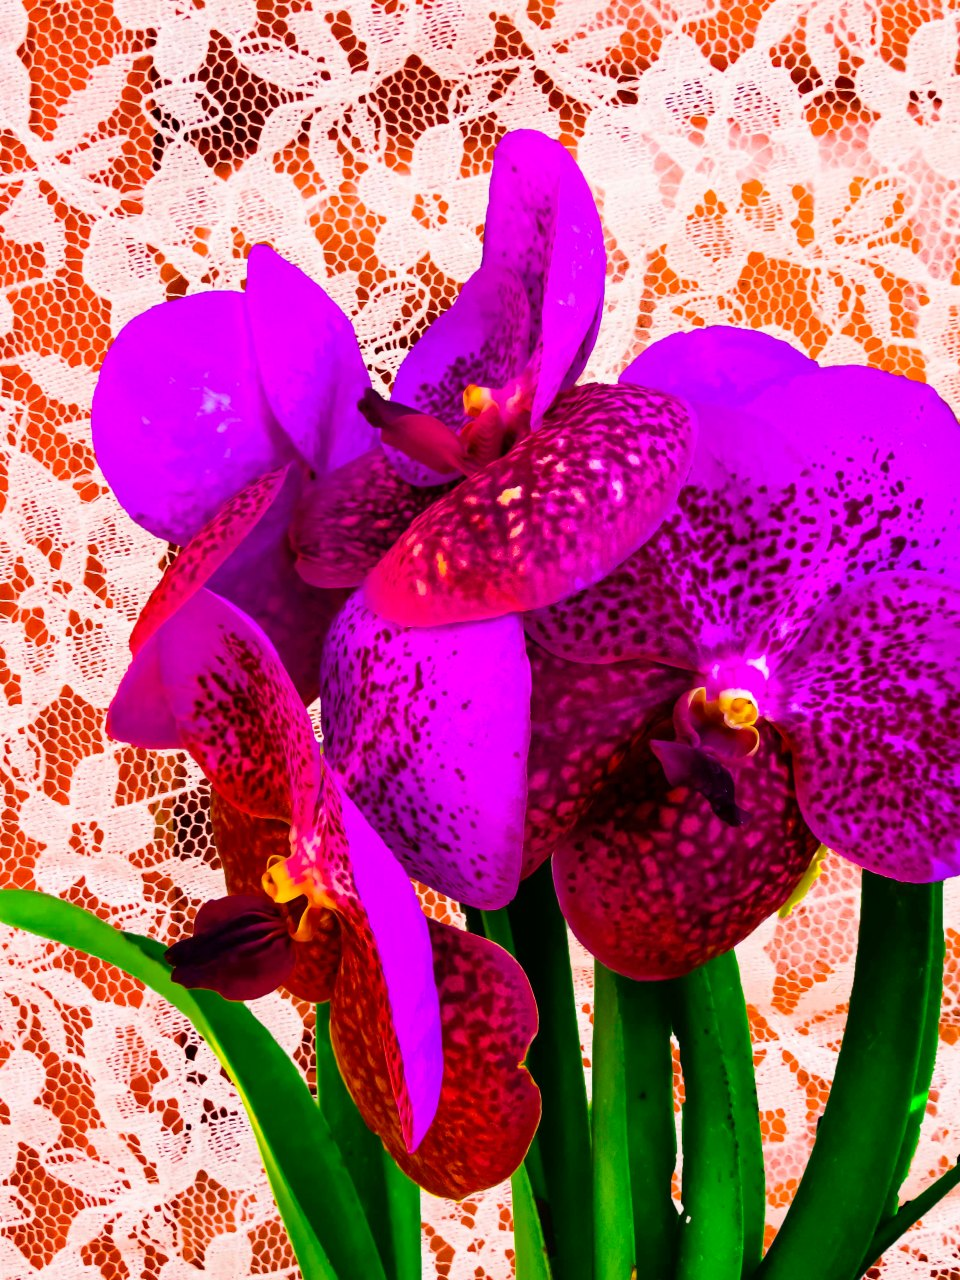 Orchids FLW 494949494 fgrfgfgf